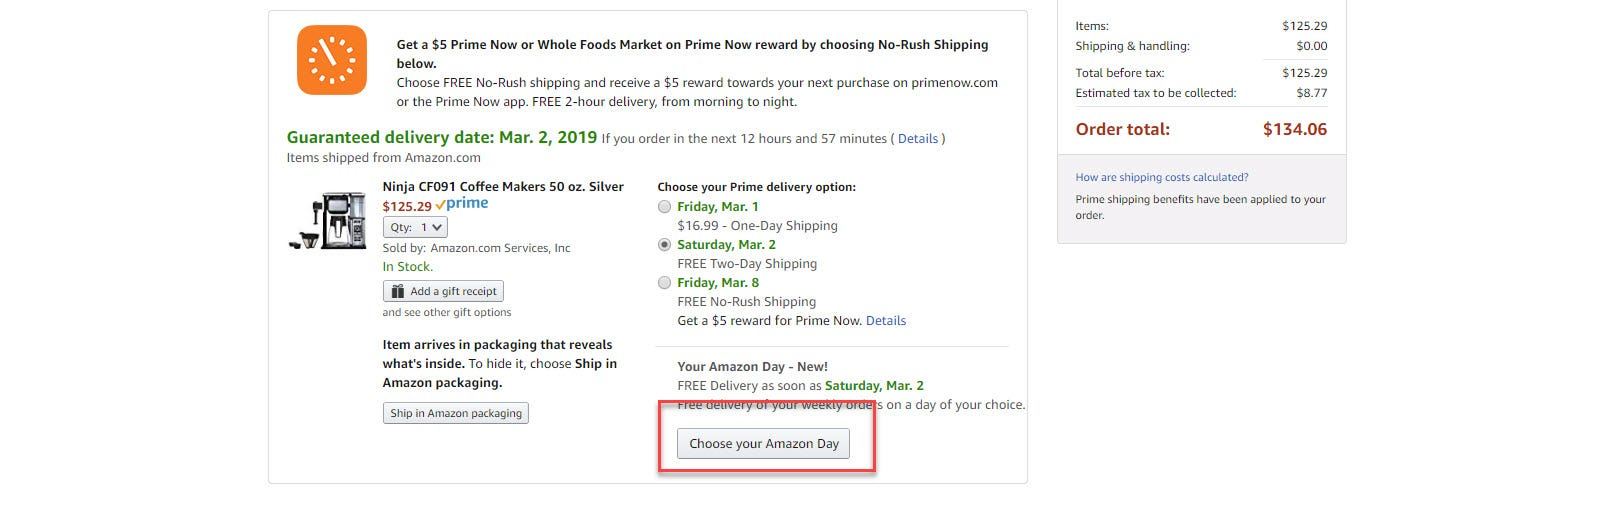 """Amazon checkout options with """"Choose another day"""" button call out"""